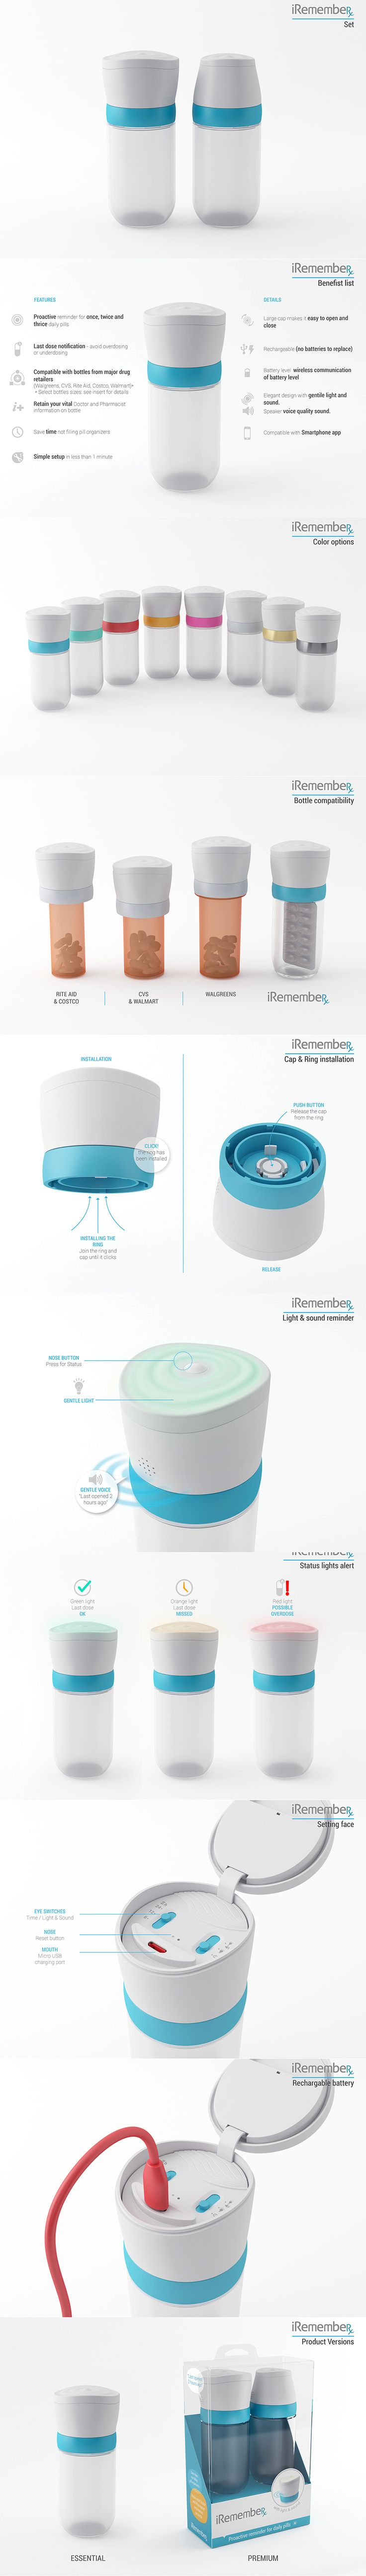 iRemember is an intelligent pill cap that fits most standard Rx bottles dispensed at major US pharmacies and gives proactive reminders and notifications.  Pre-order it! https://www.wealthtaxi.com/   Credits   Idea and product development: Moore Greenberg - Wealth Taxi, Inc. Product development: Gil adar Design: Moop Engineering: d-cube designs